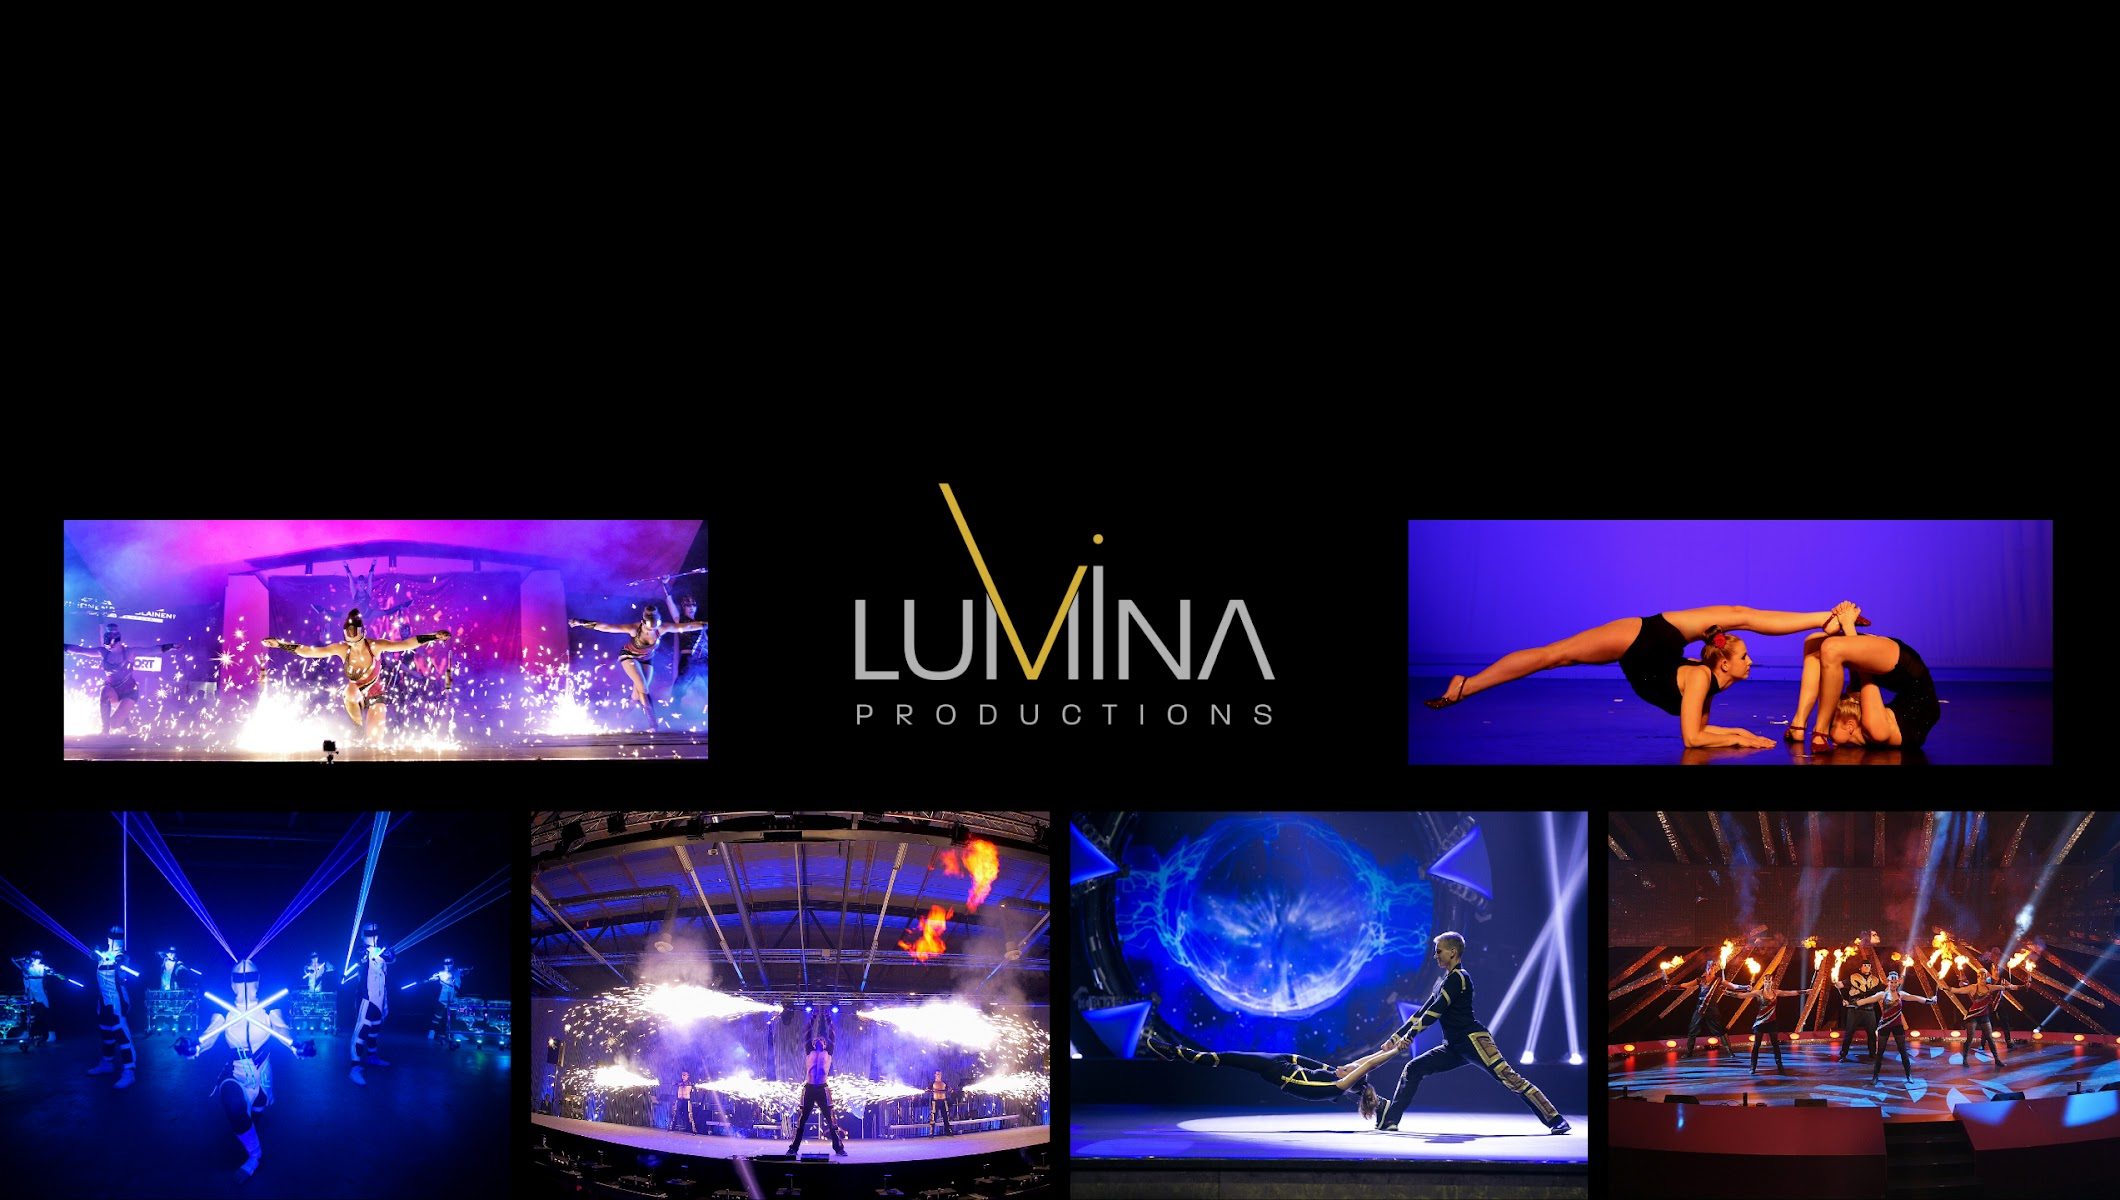 Lumina Productions